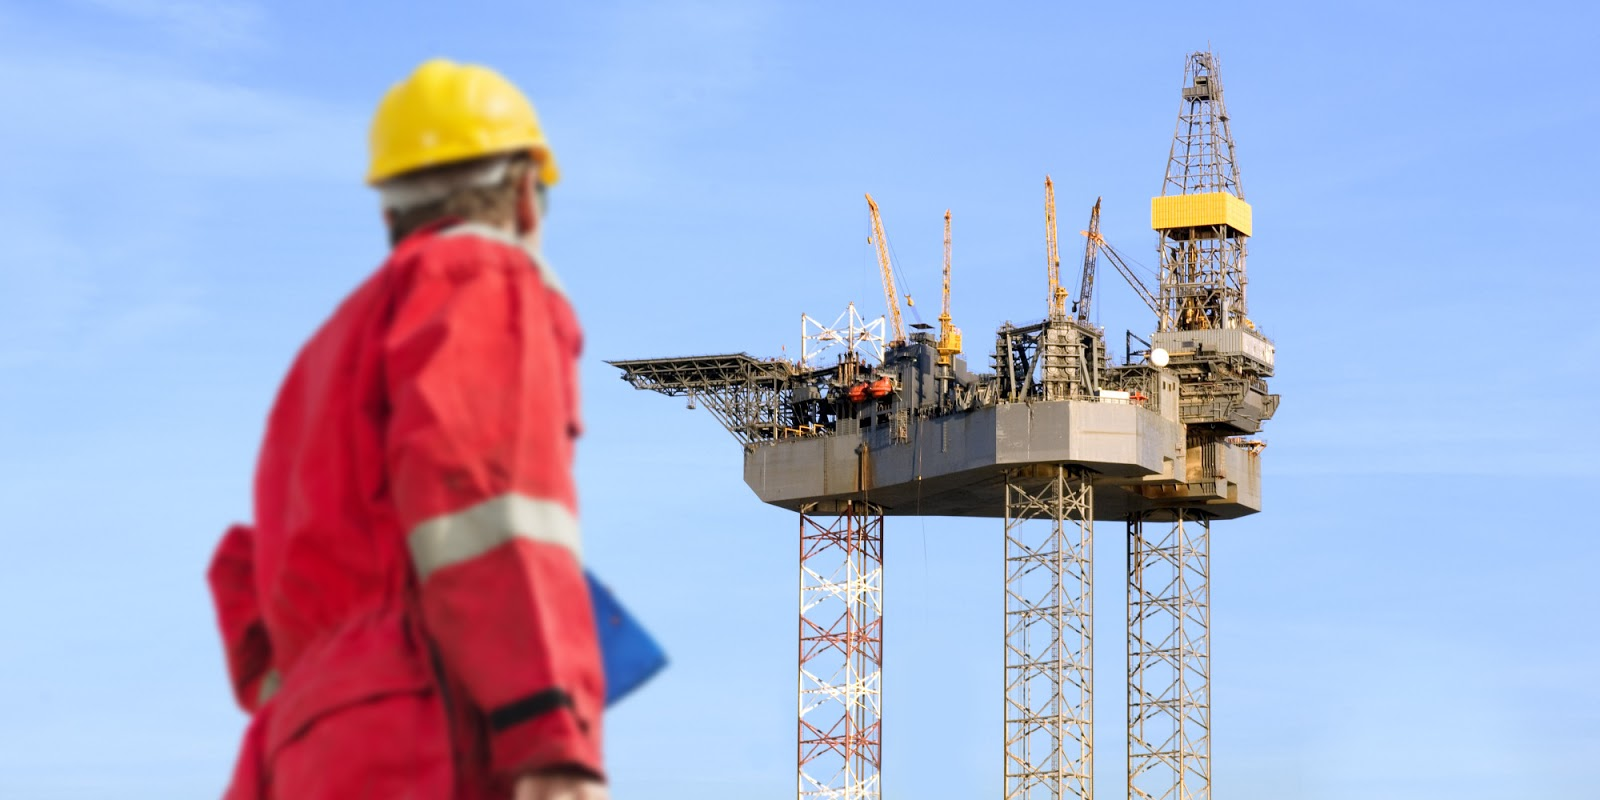 20 International Oil and Gas Industry Recruiters to help you find work in the industry